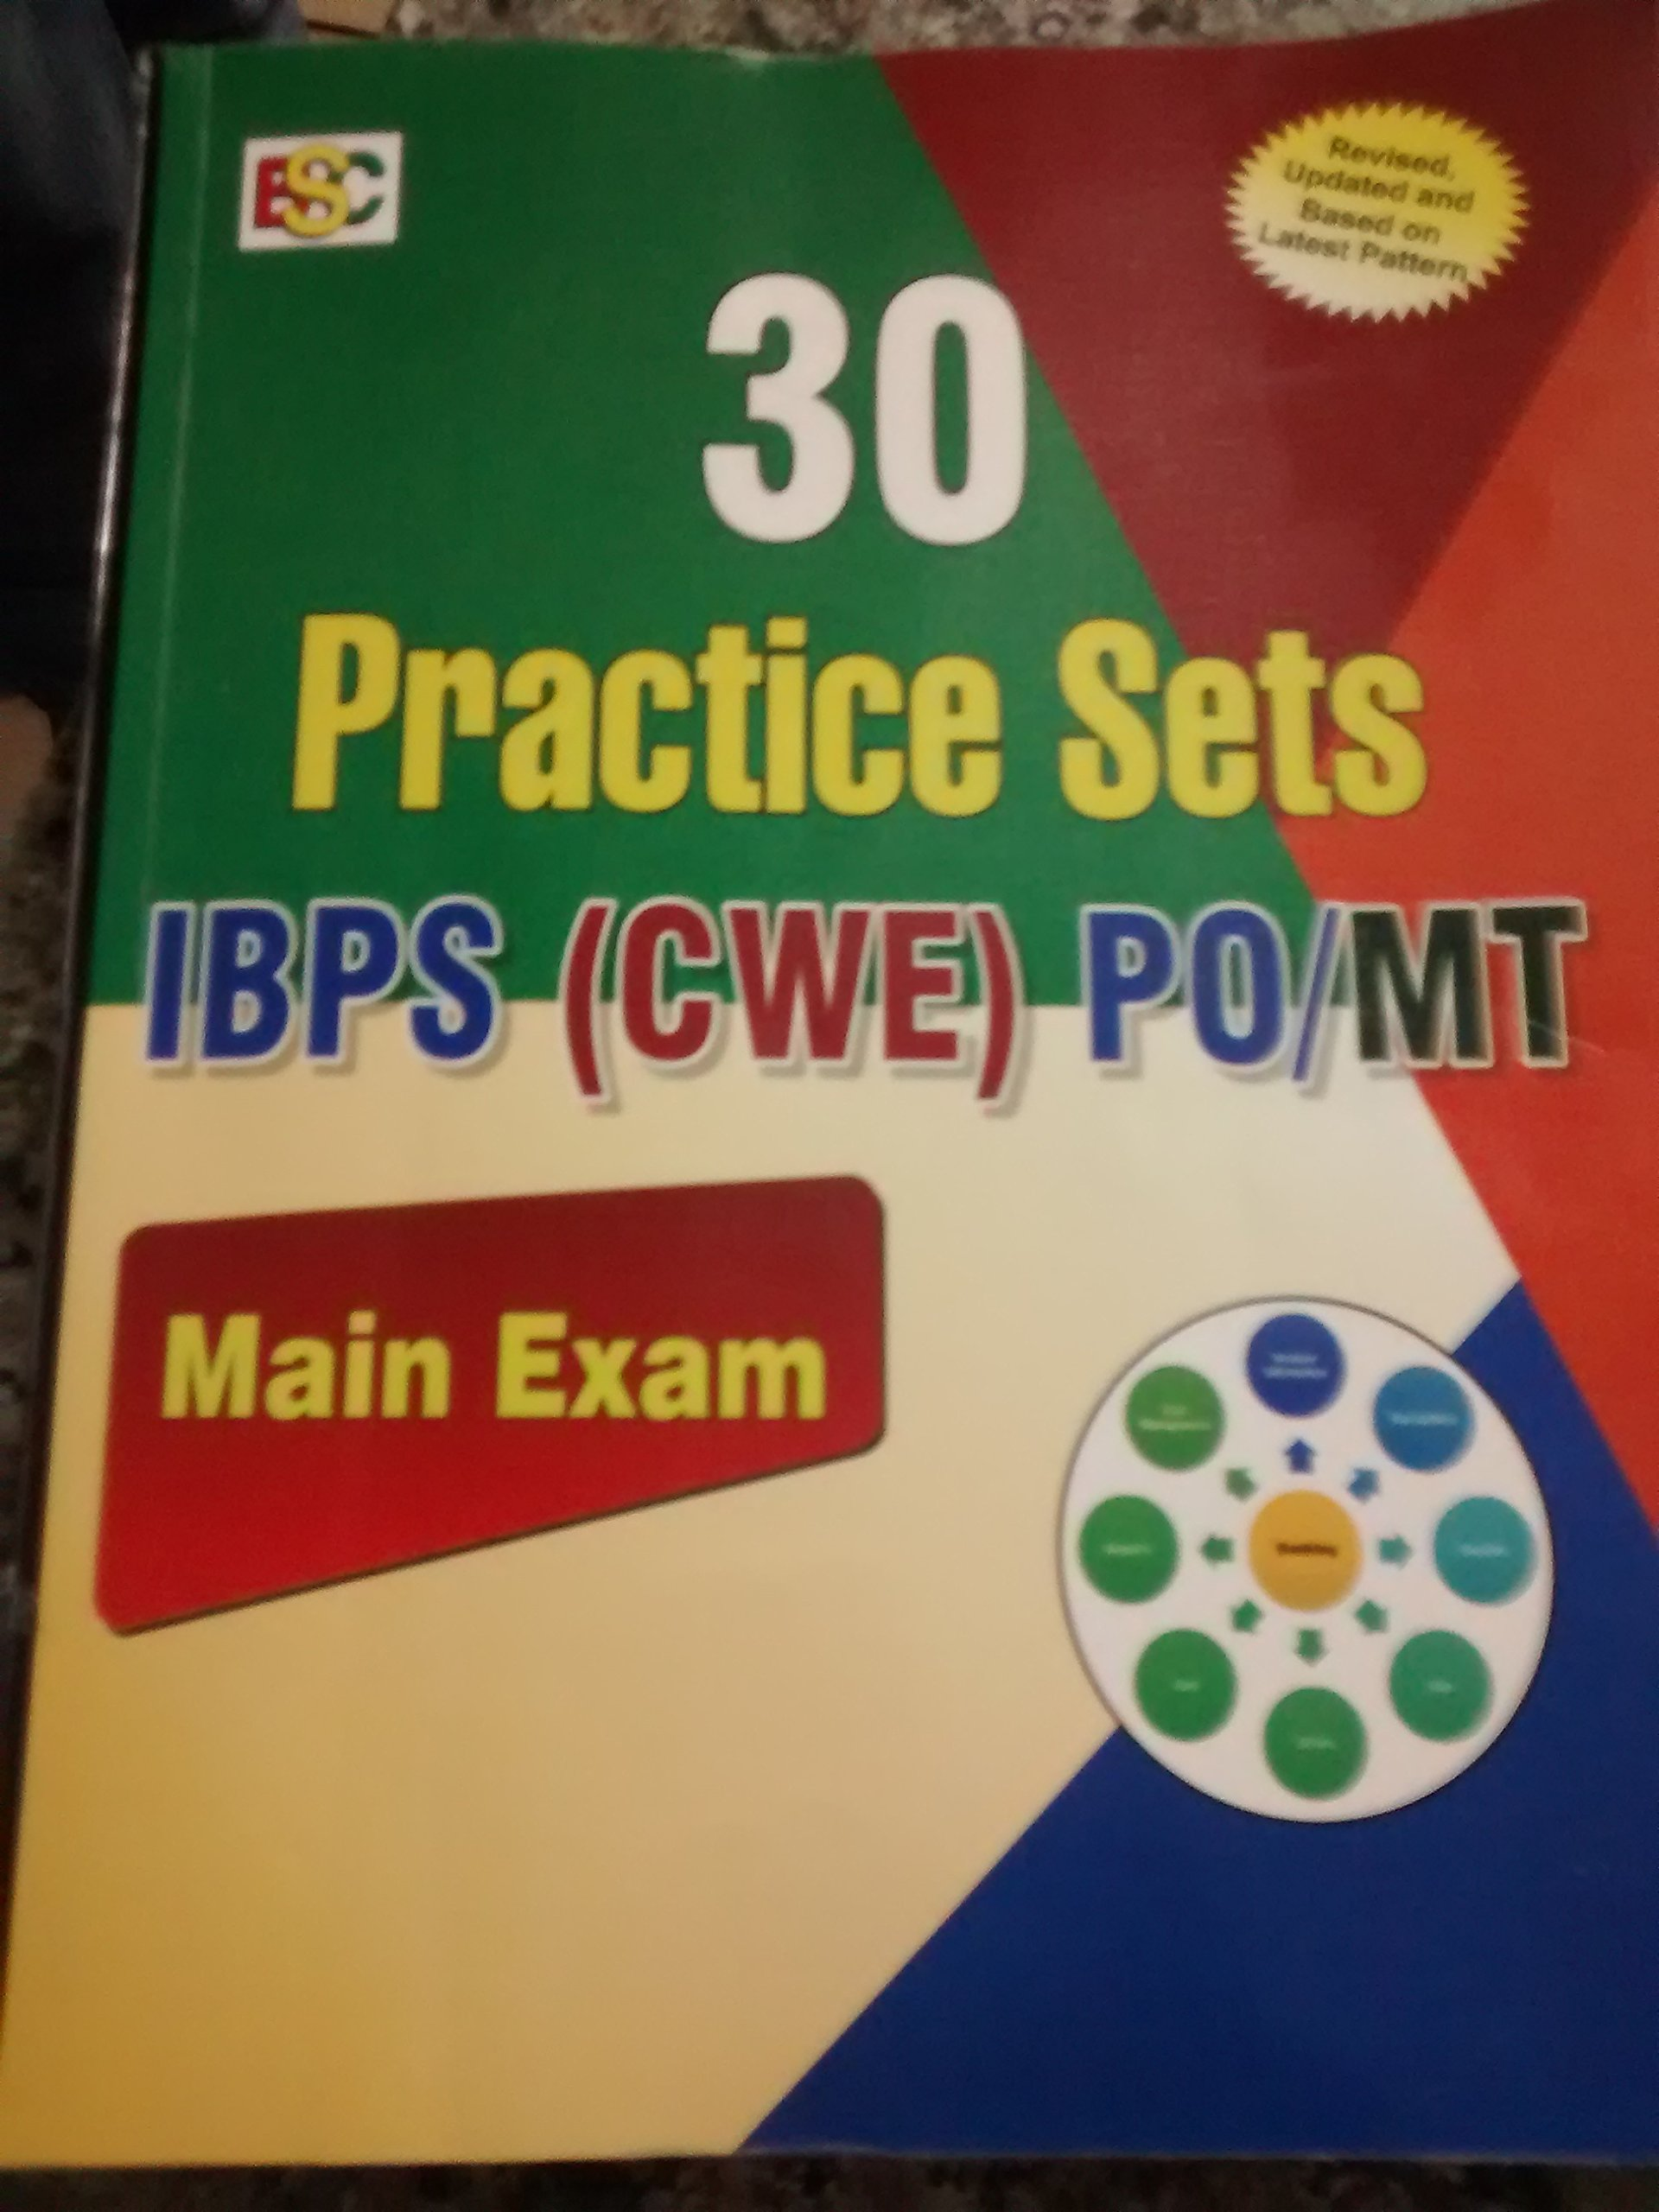 Buy 30 practice sets for bank pomt ibpscwe pattern book online at buy 30 practice sets for bank pomt ibpscwe pattern book online at low prices in india 30 practice sets for bank pomt ibpscwe pattern reviews fandeluxe Choice Image